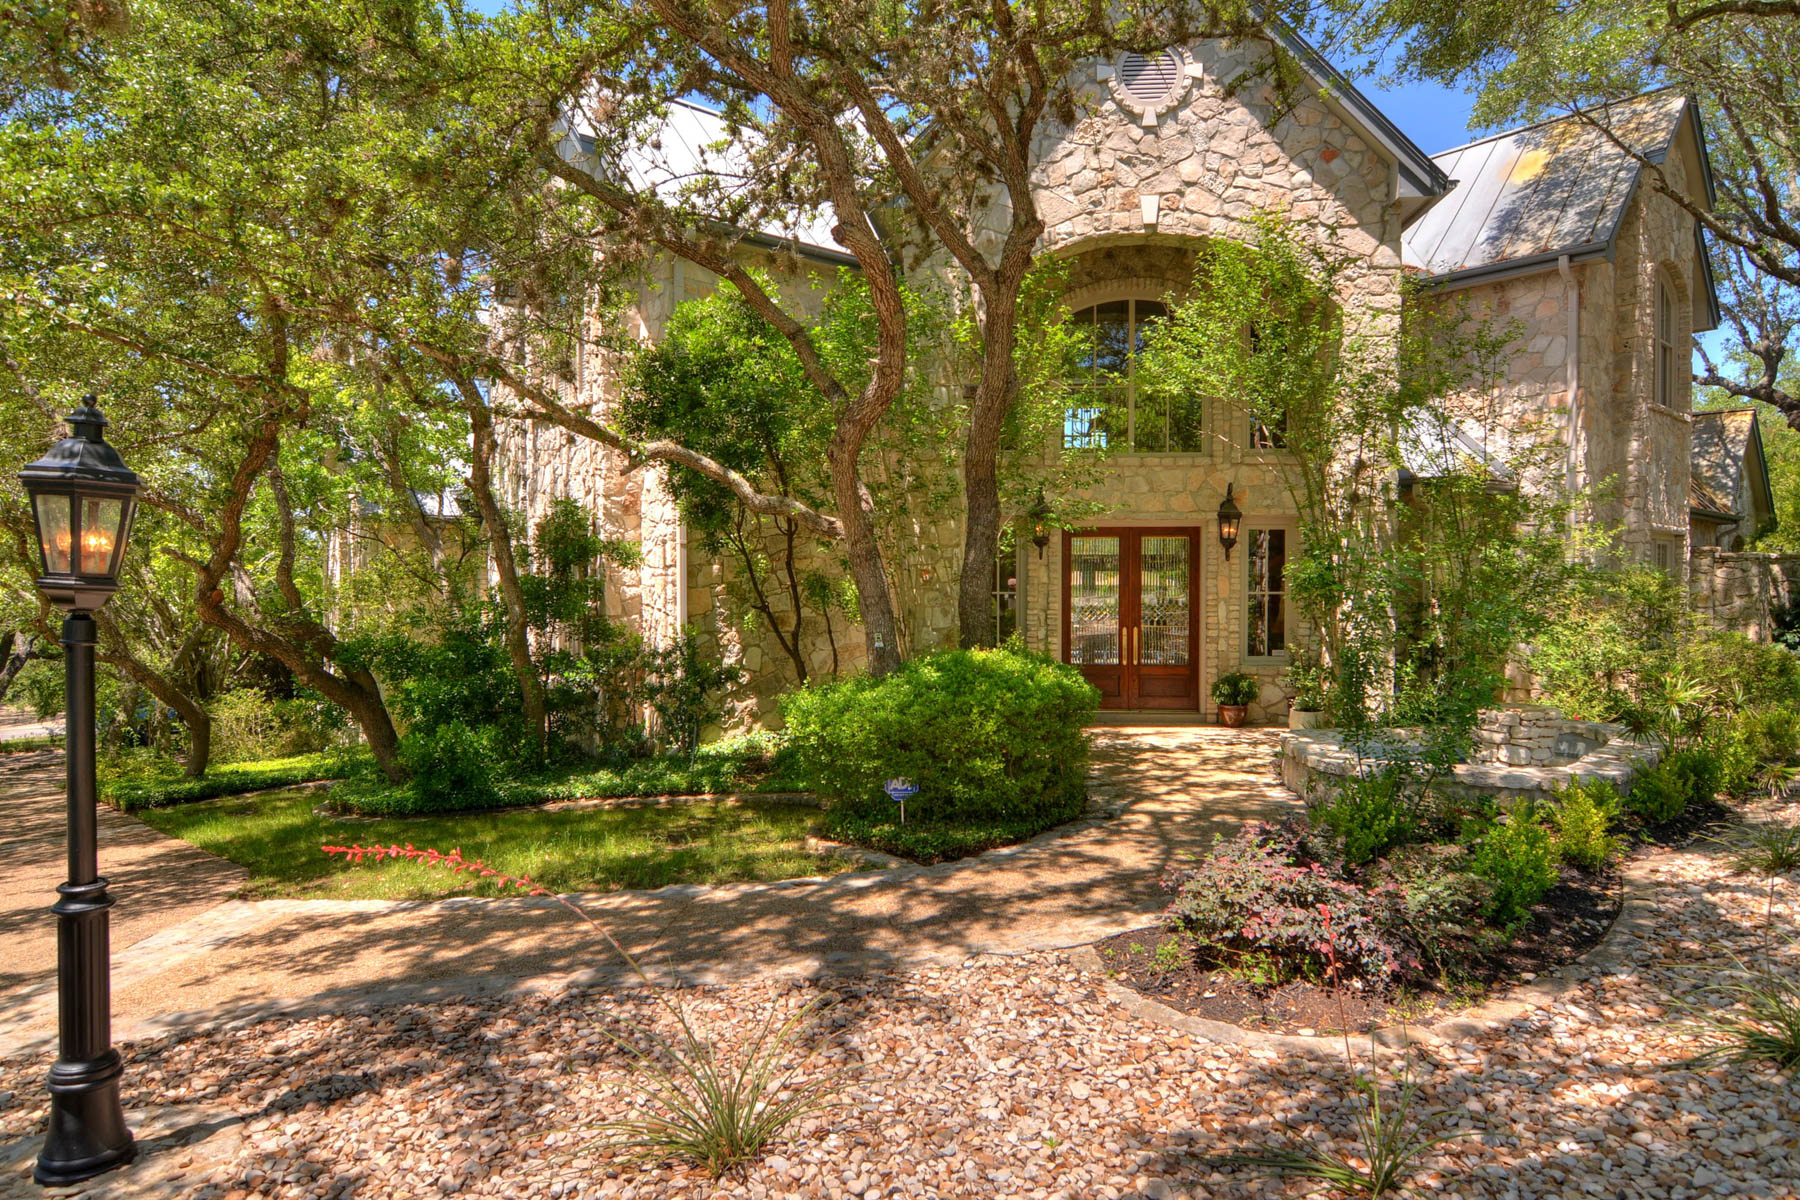 Single Family Home for Sale at Elegant Home in The Dominion 5 Whitechurch Ln The Dominion, San Antonio, Texas, 78257 United States